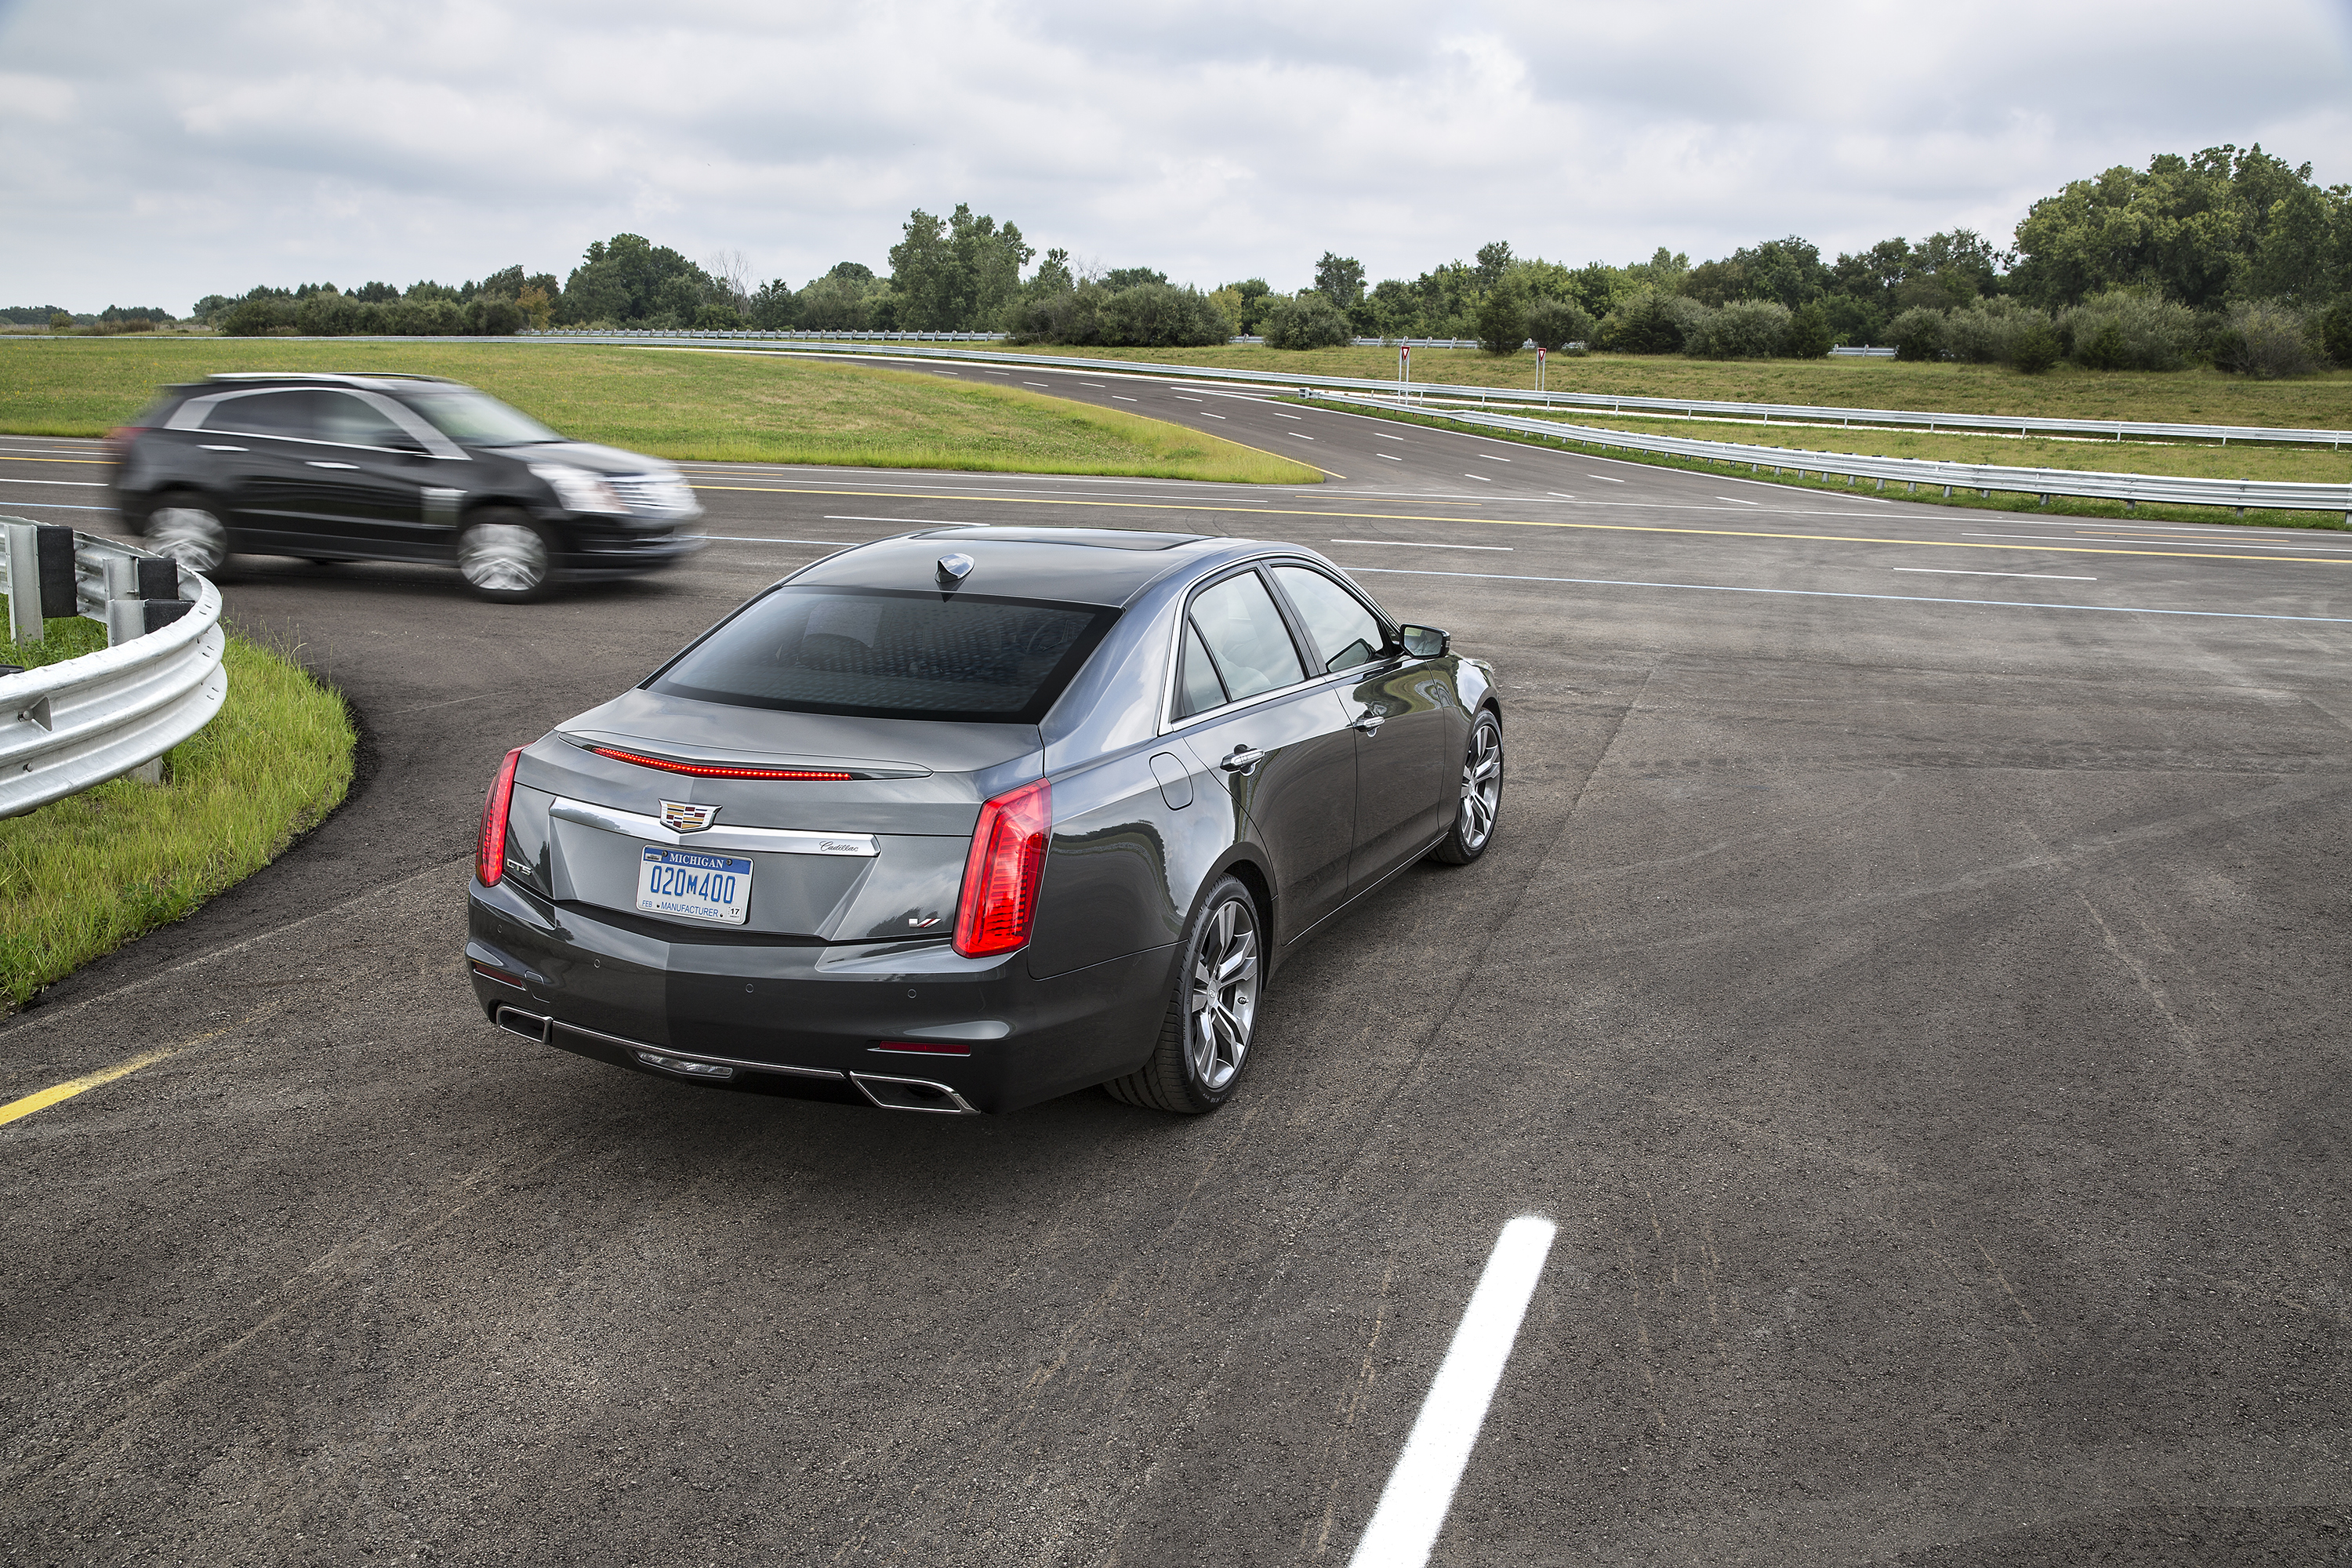 A 2015 Cadillac CTS, equipped with V2V technology, notifies the driver of the approaching Cadillac SRX from the left before the driver could see the vehicle.